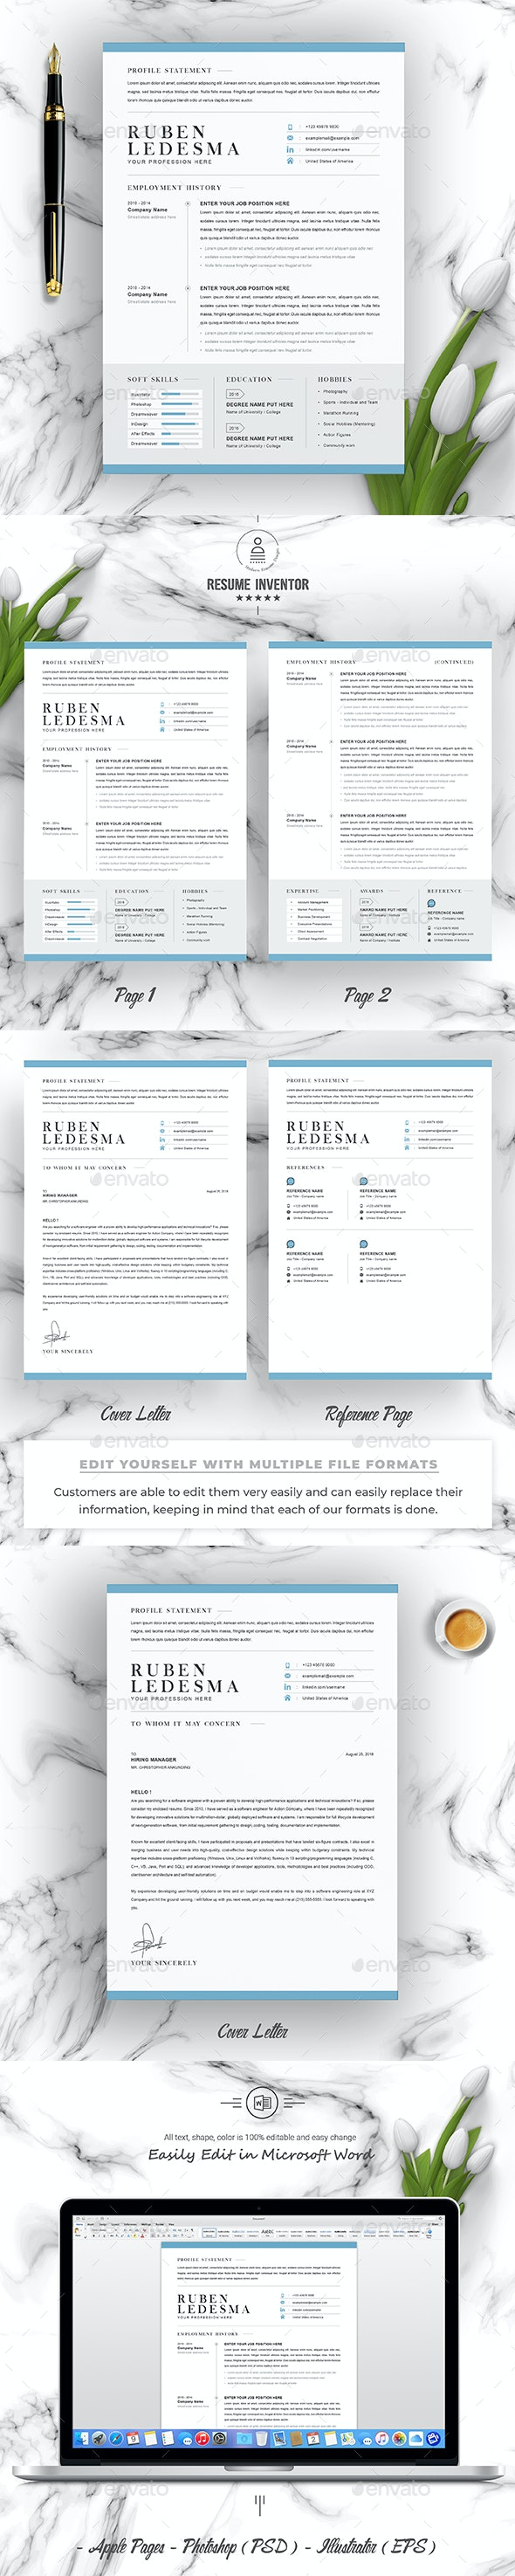 Cover Letter For A Resume Template from graphicriver.img.customer.envatousercontent.com